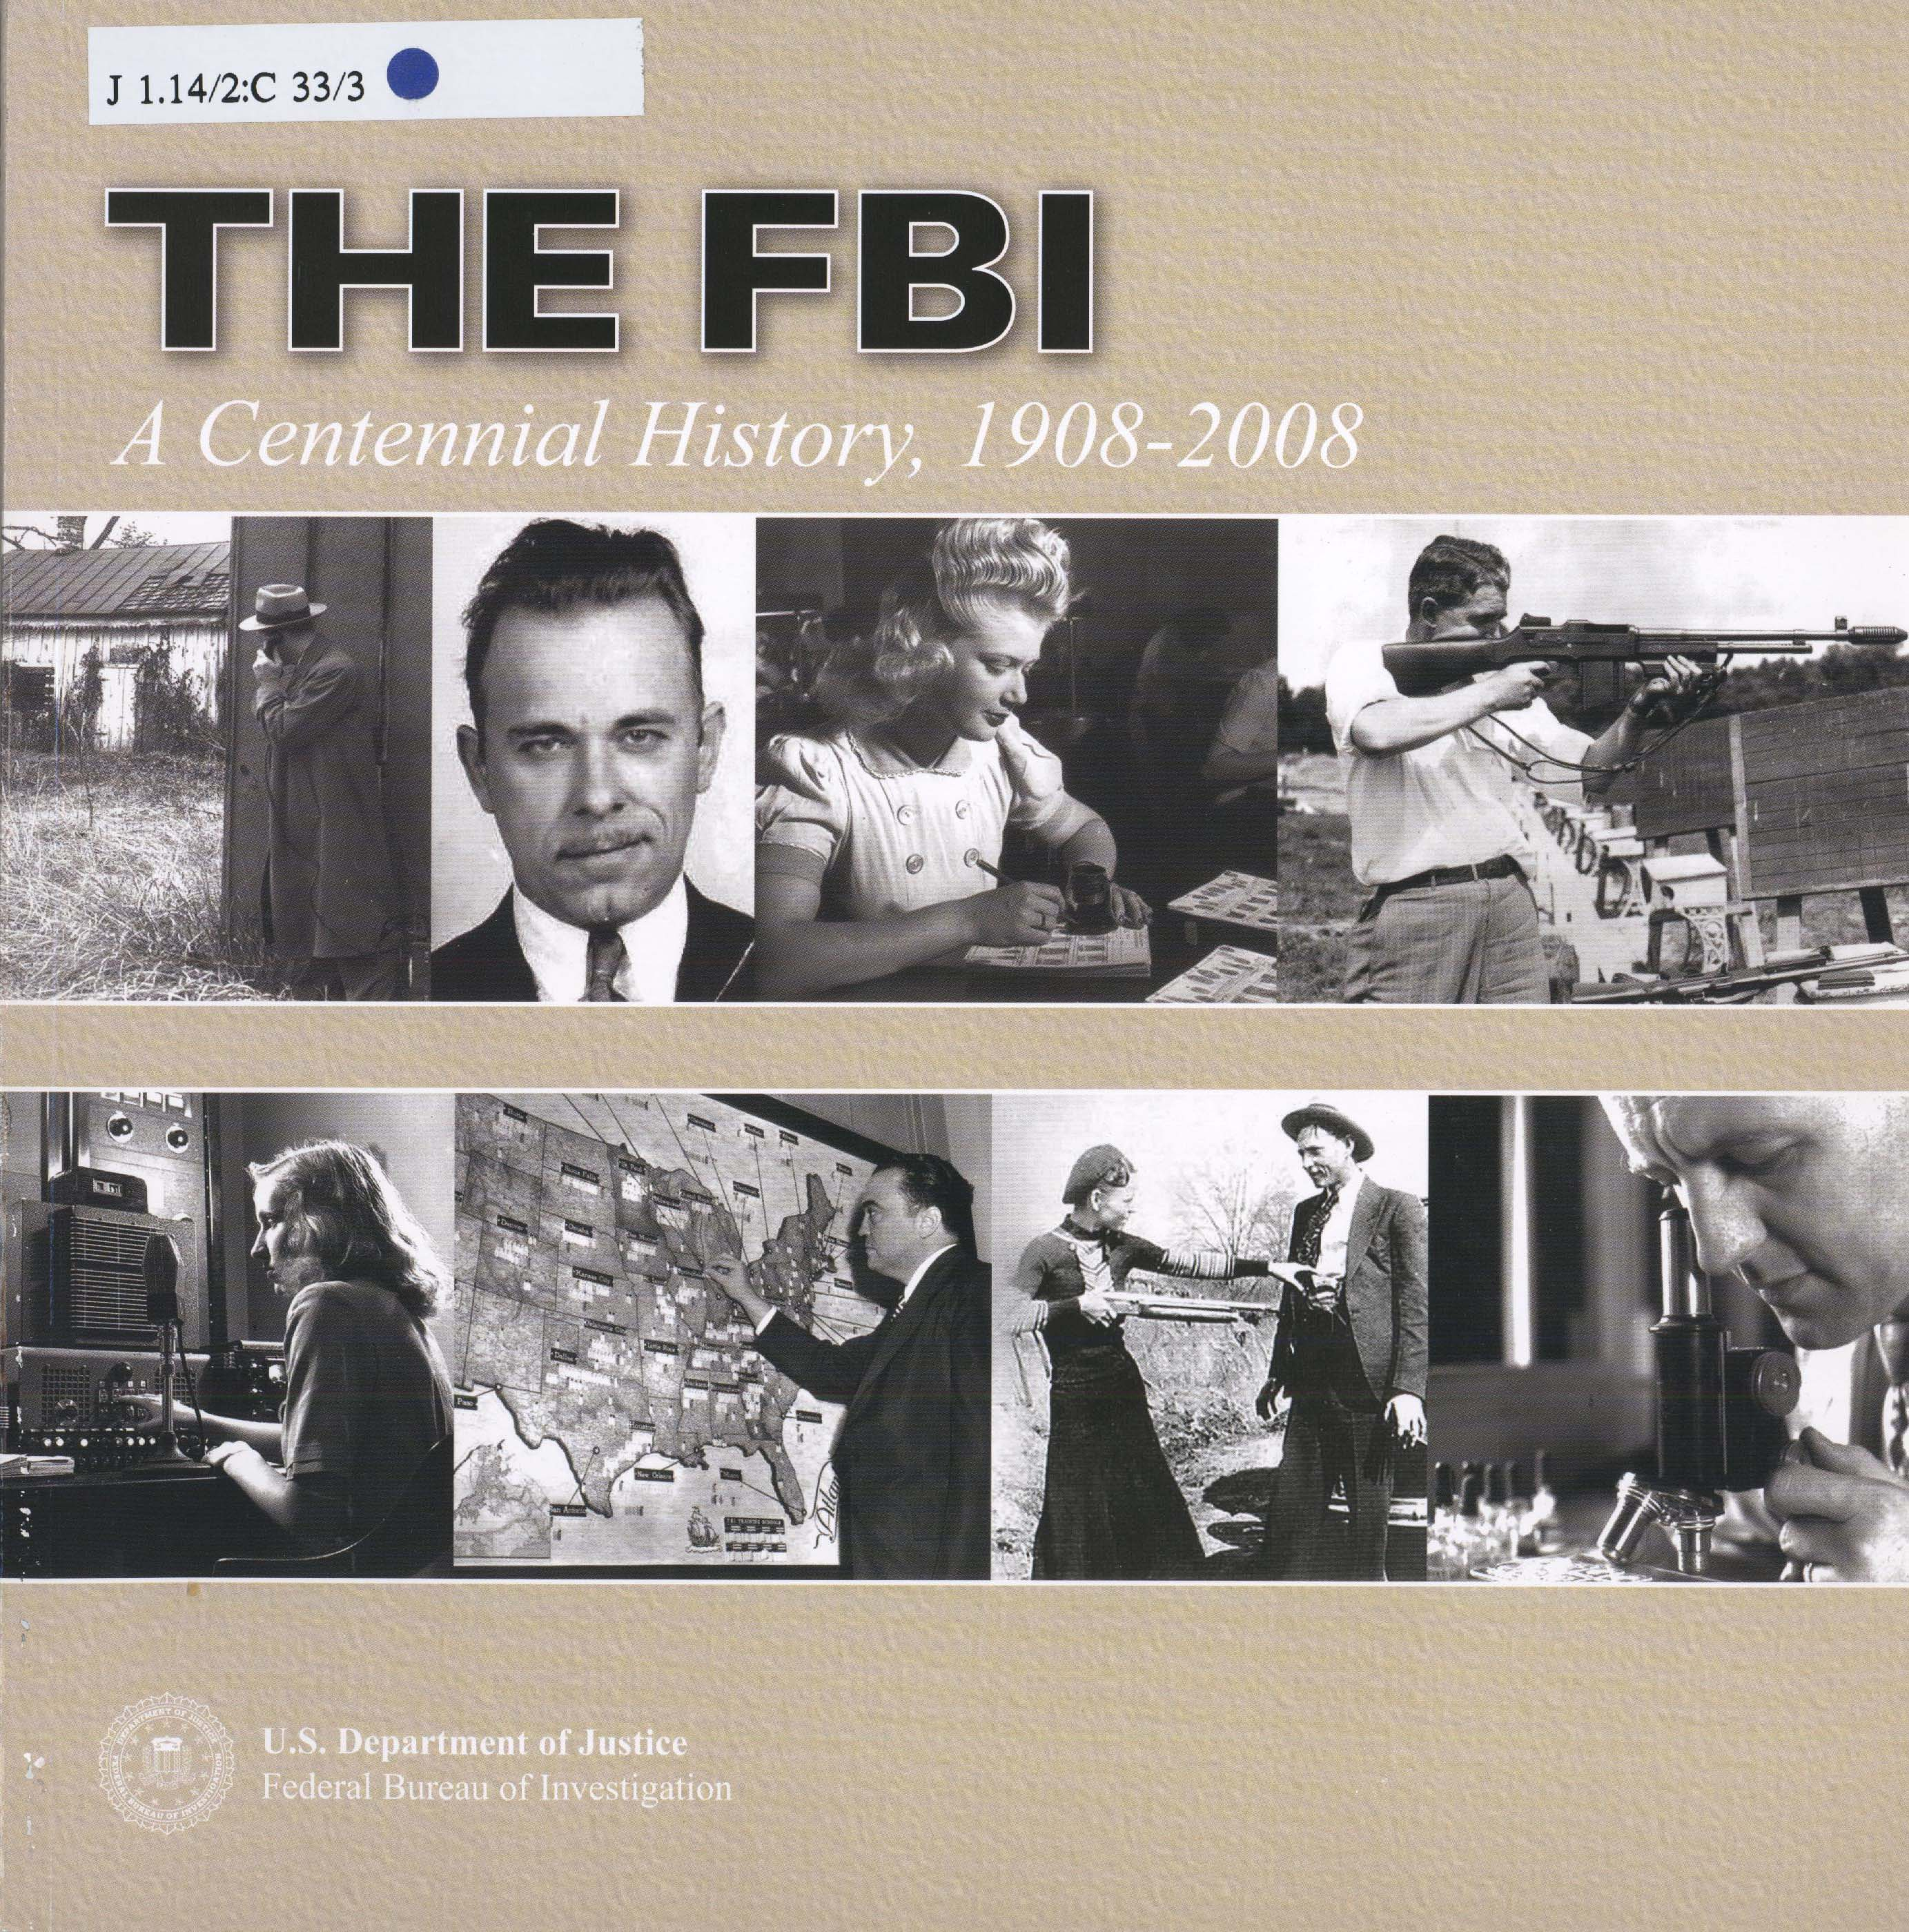 The FBI: a centennial history, 1908-2008 book cover